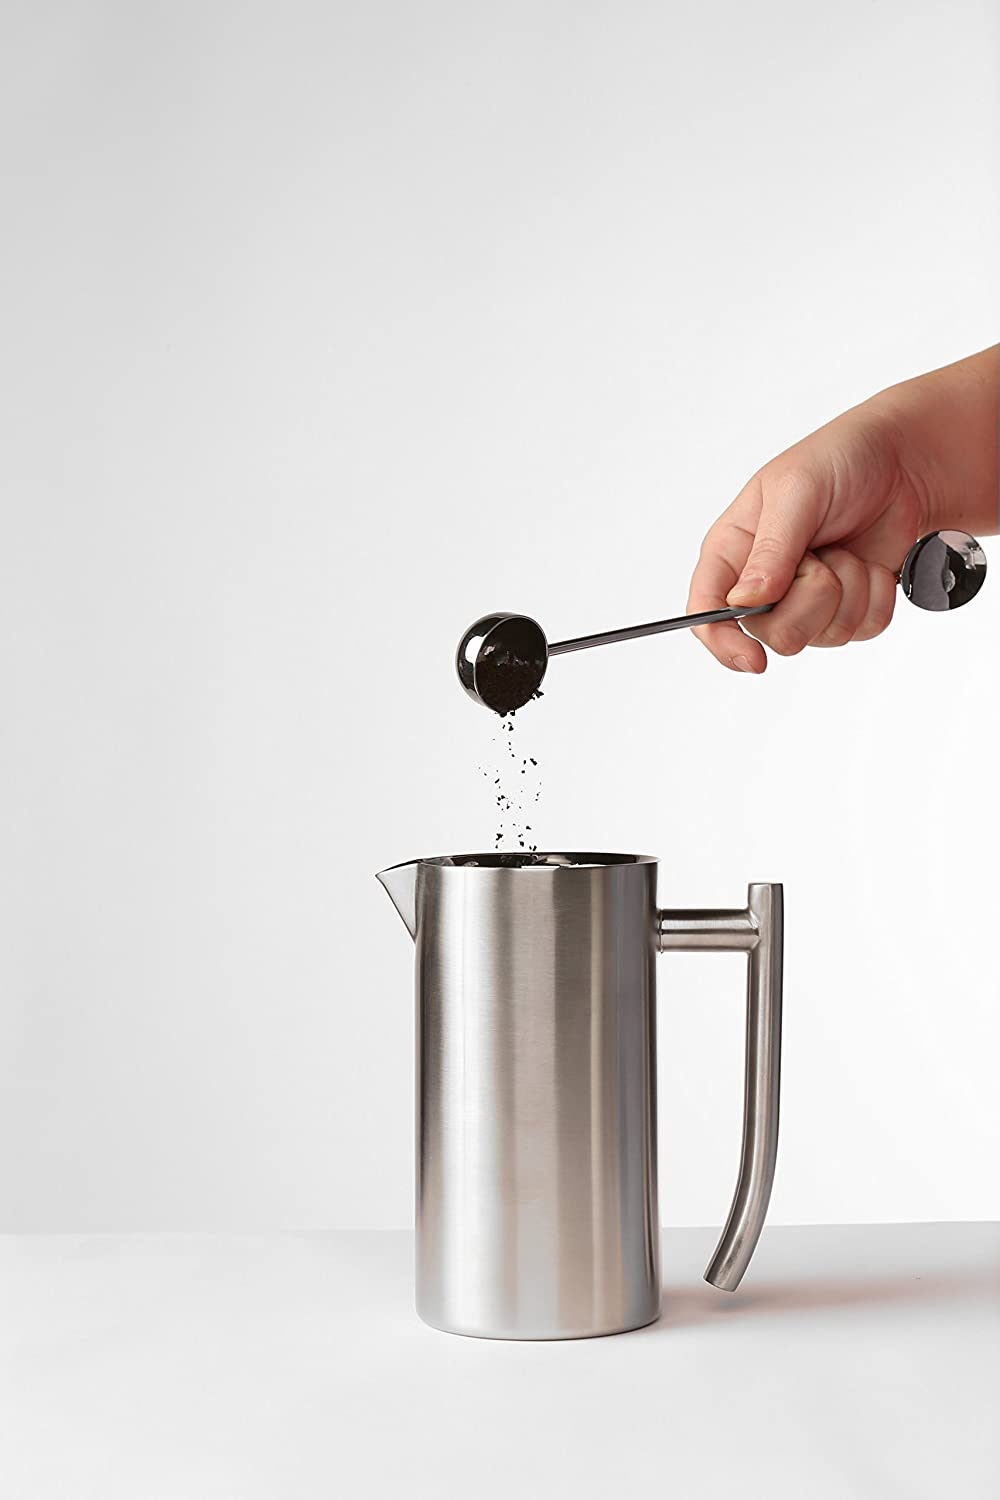 Silver Frieling USA 130 Double Wall Stainless Steel French Press Coffee Maker 44 oz